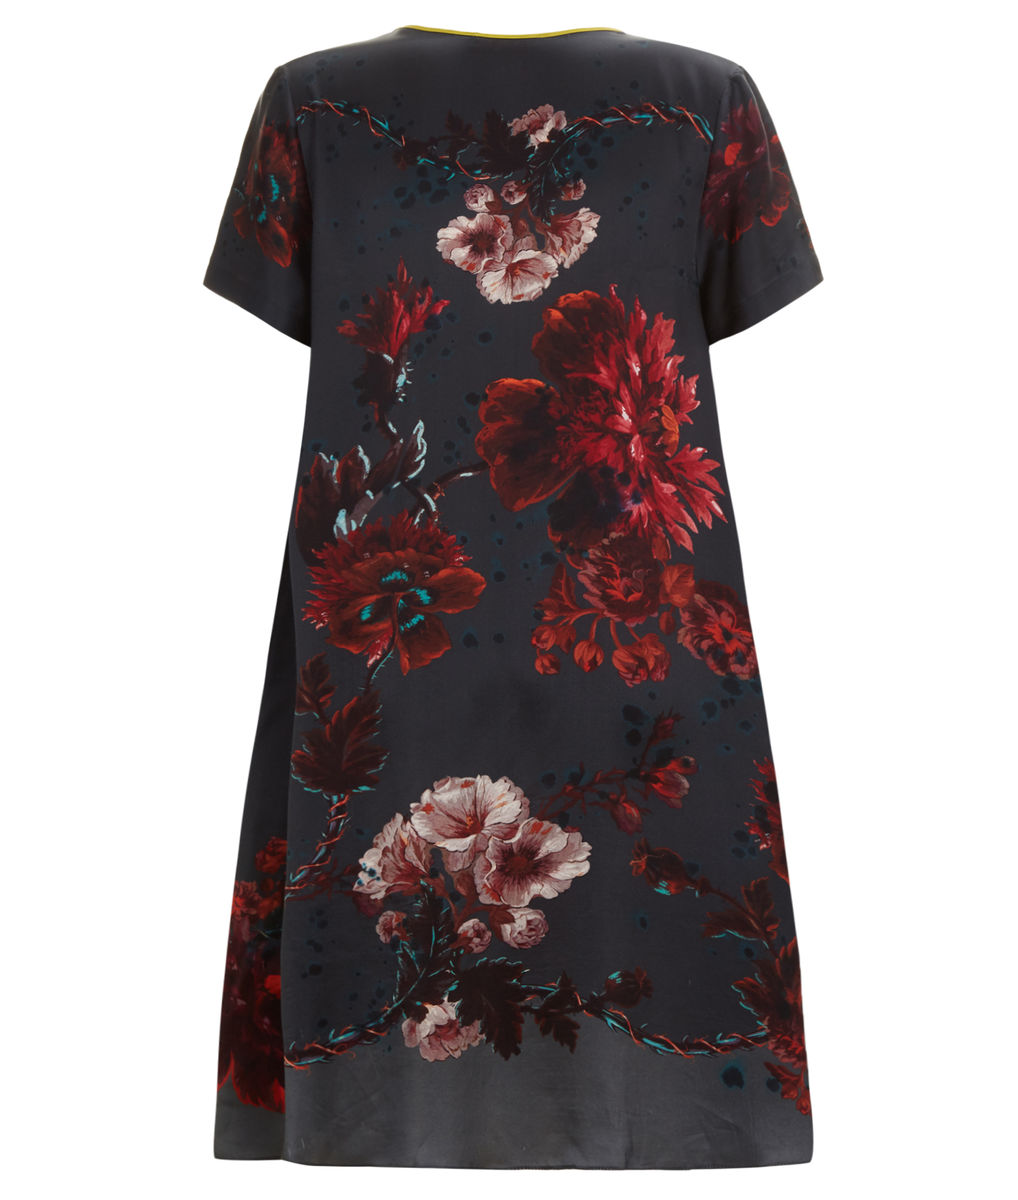 Frieda Dress in Gothic Floral Print (Petrol) - product images  of